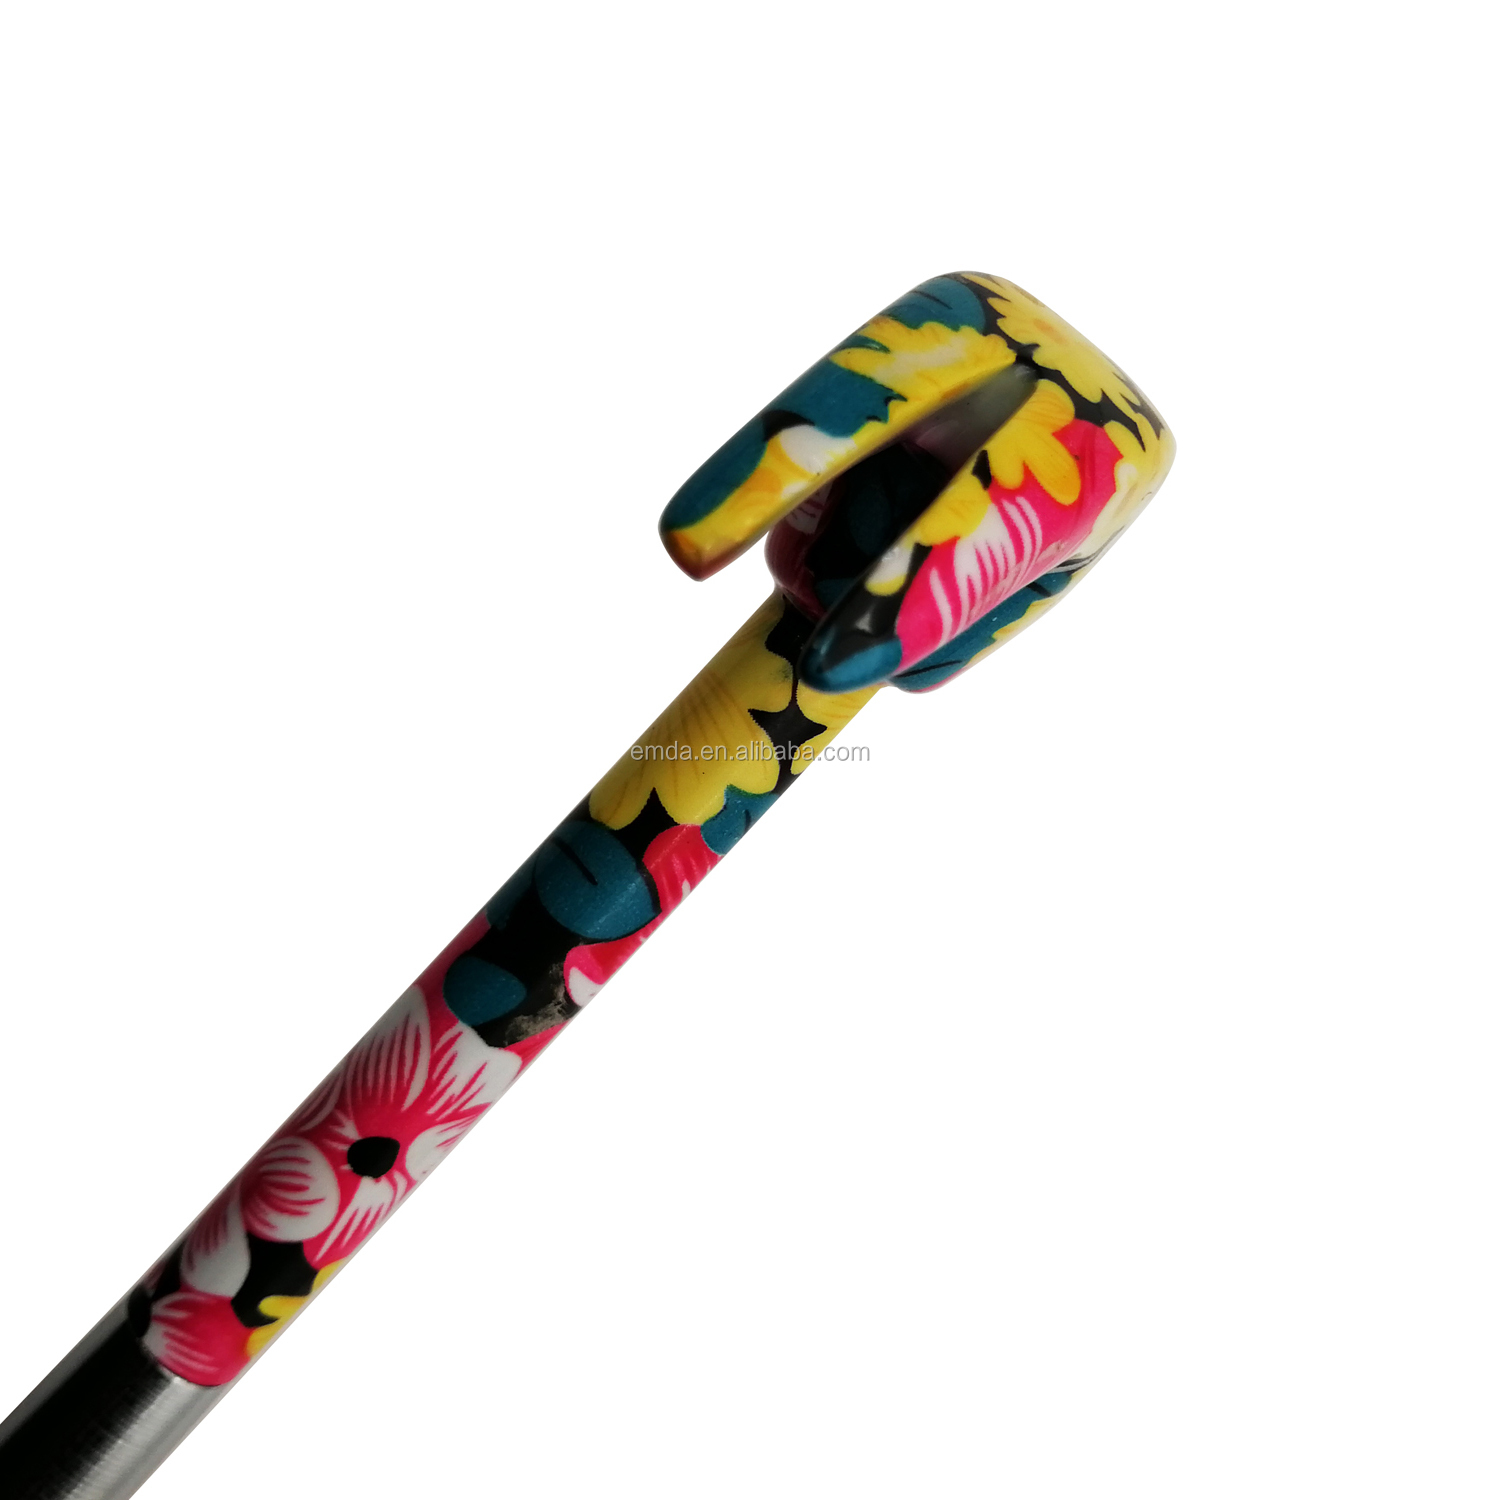 Fancy floral design all metal multifunctional  5 in 1 floral printed mini claw hammer with screwdriver for lady